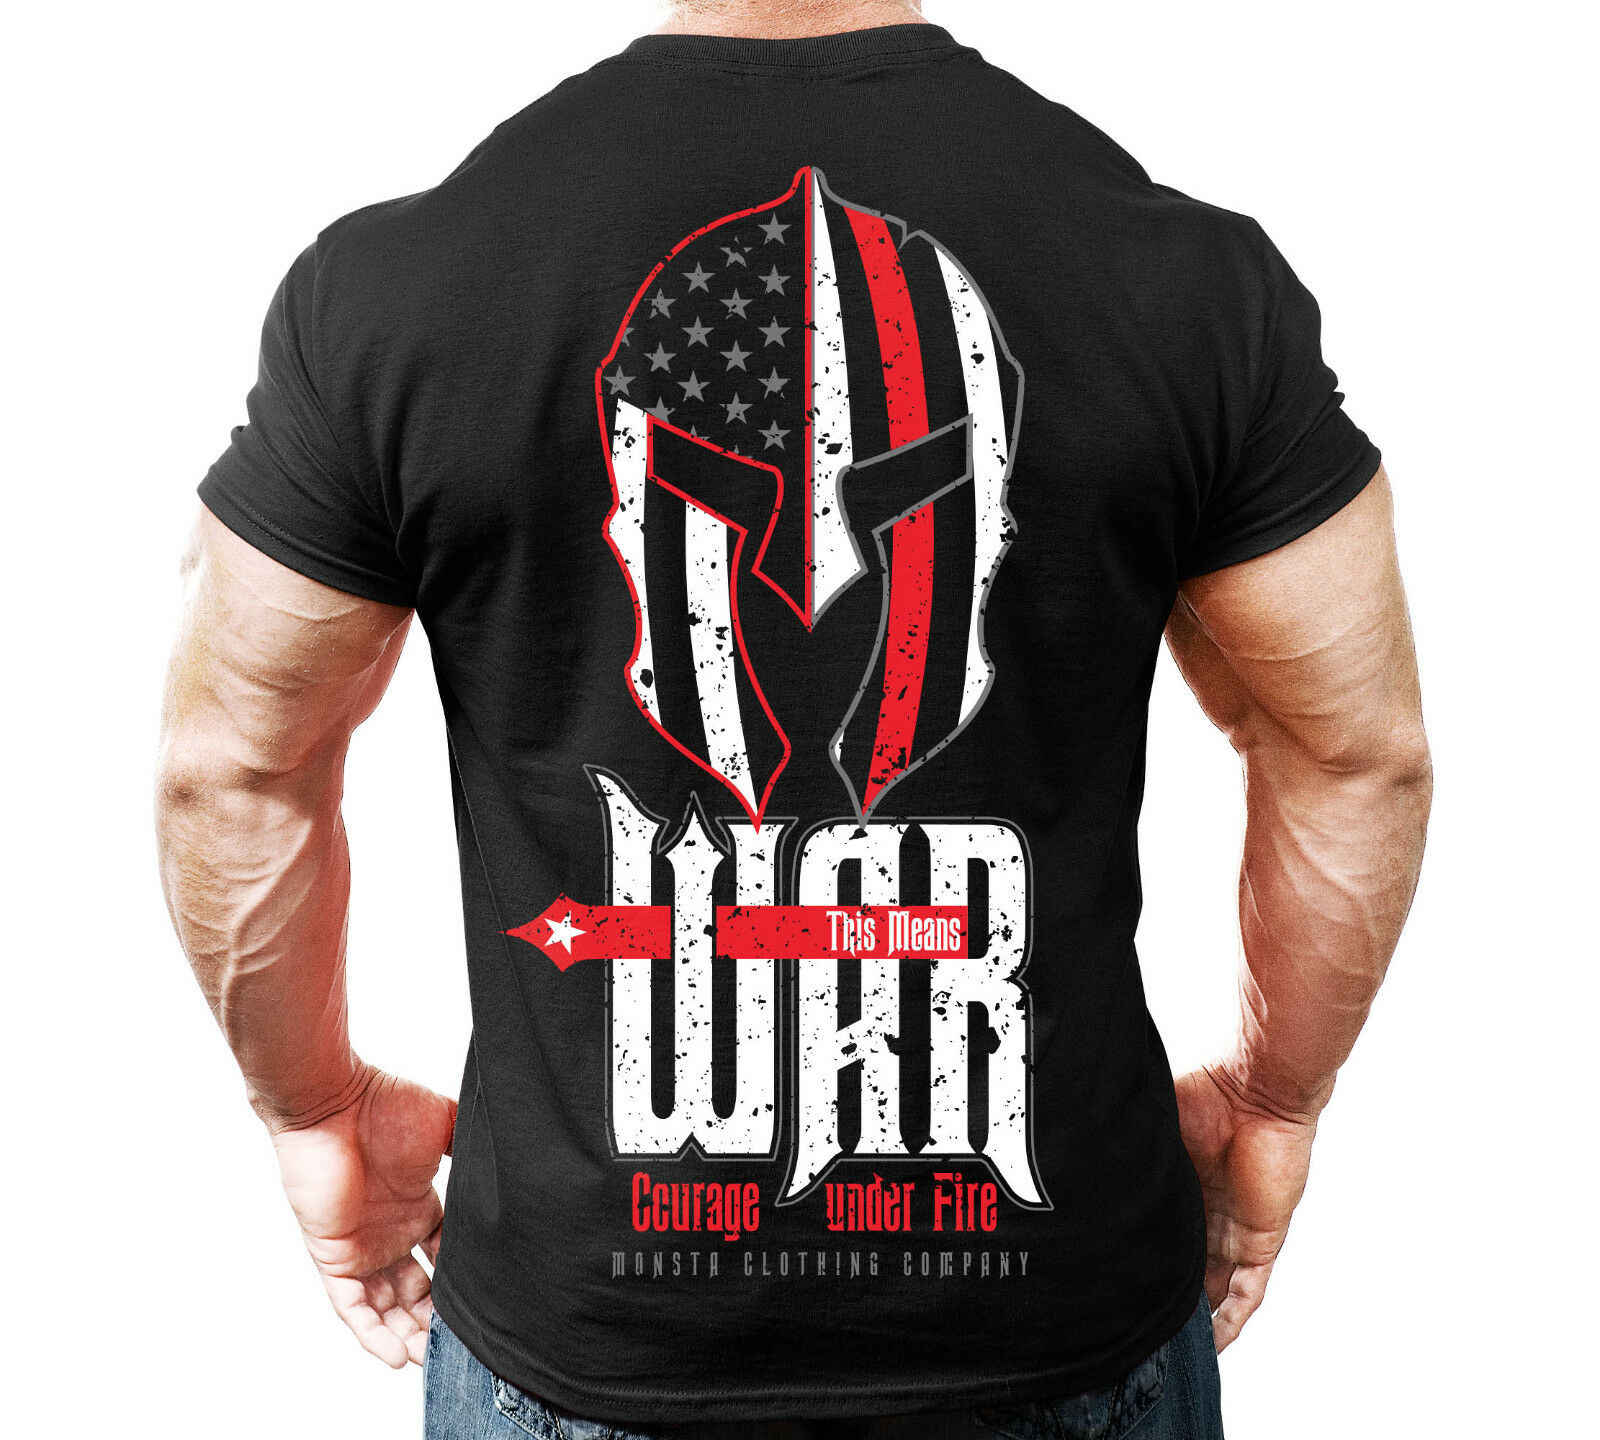 084bc16c5665 New Men's Monsta Clothing Fitness Gym T shirt This Means War ...